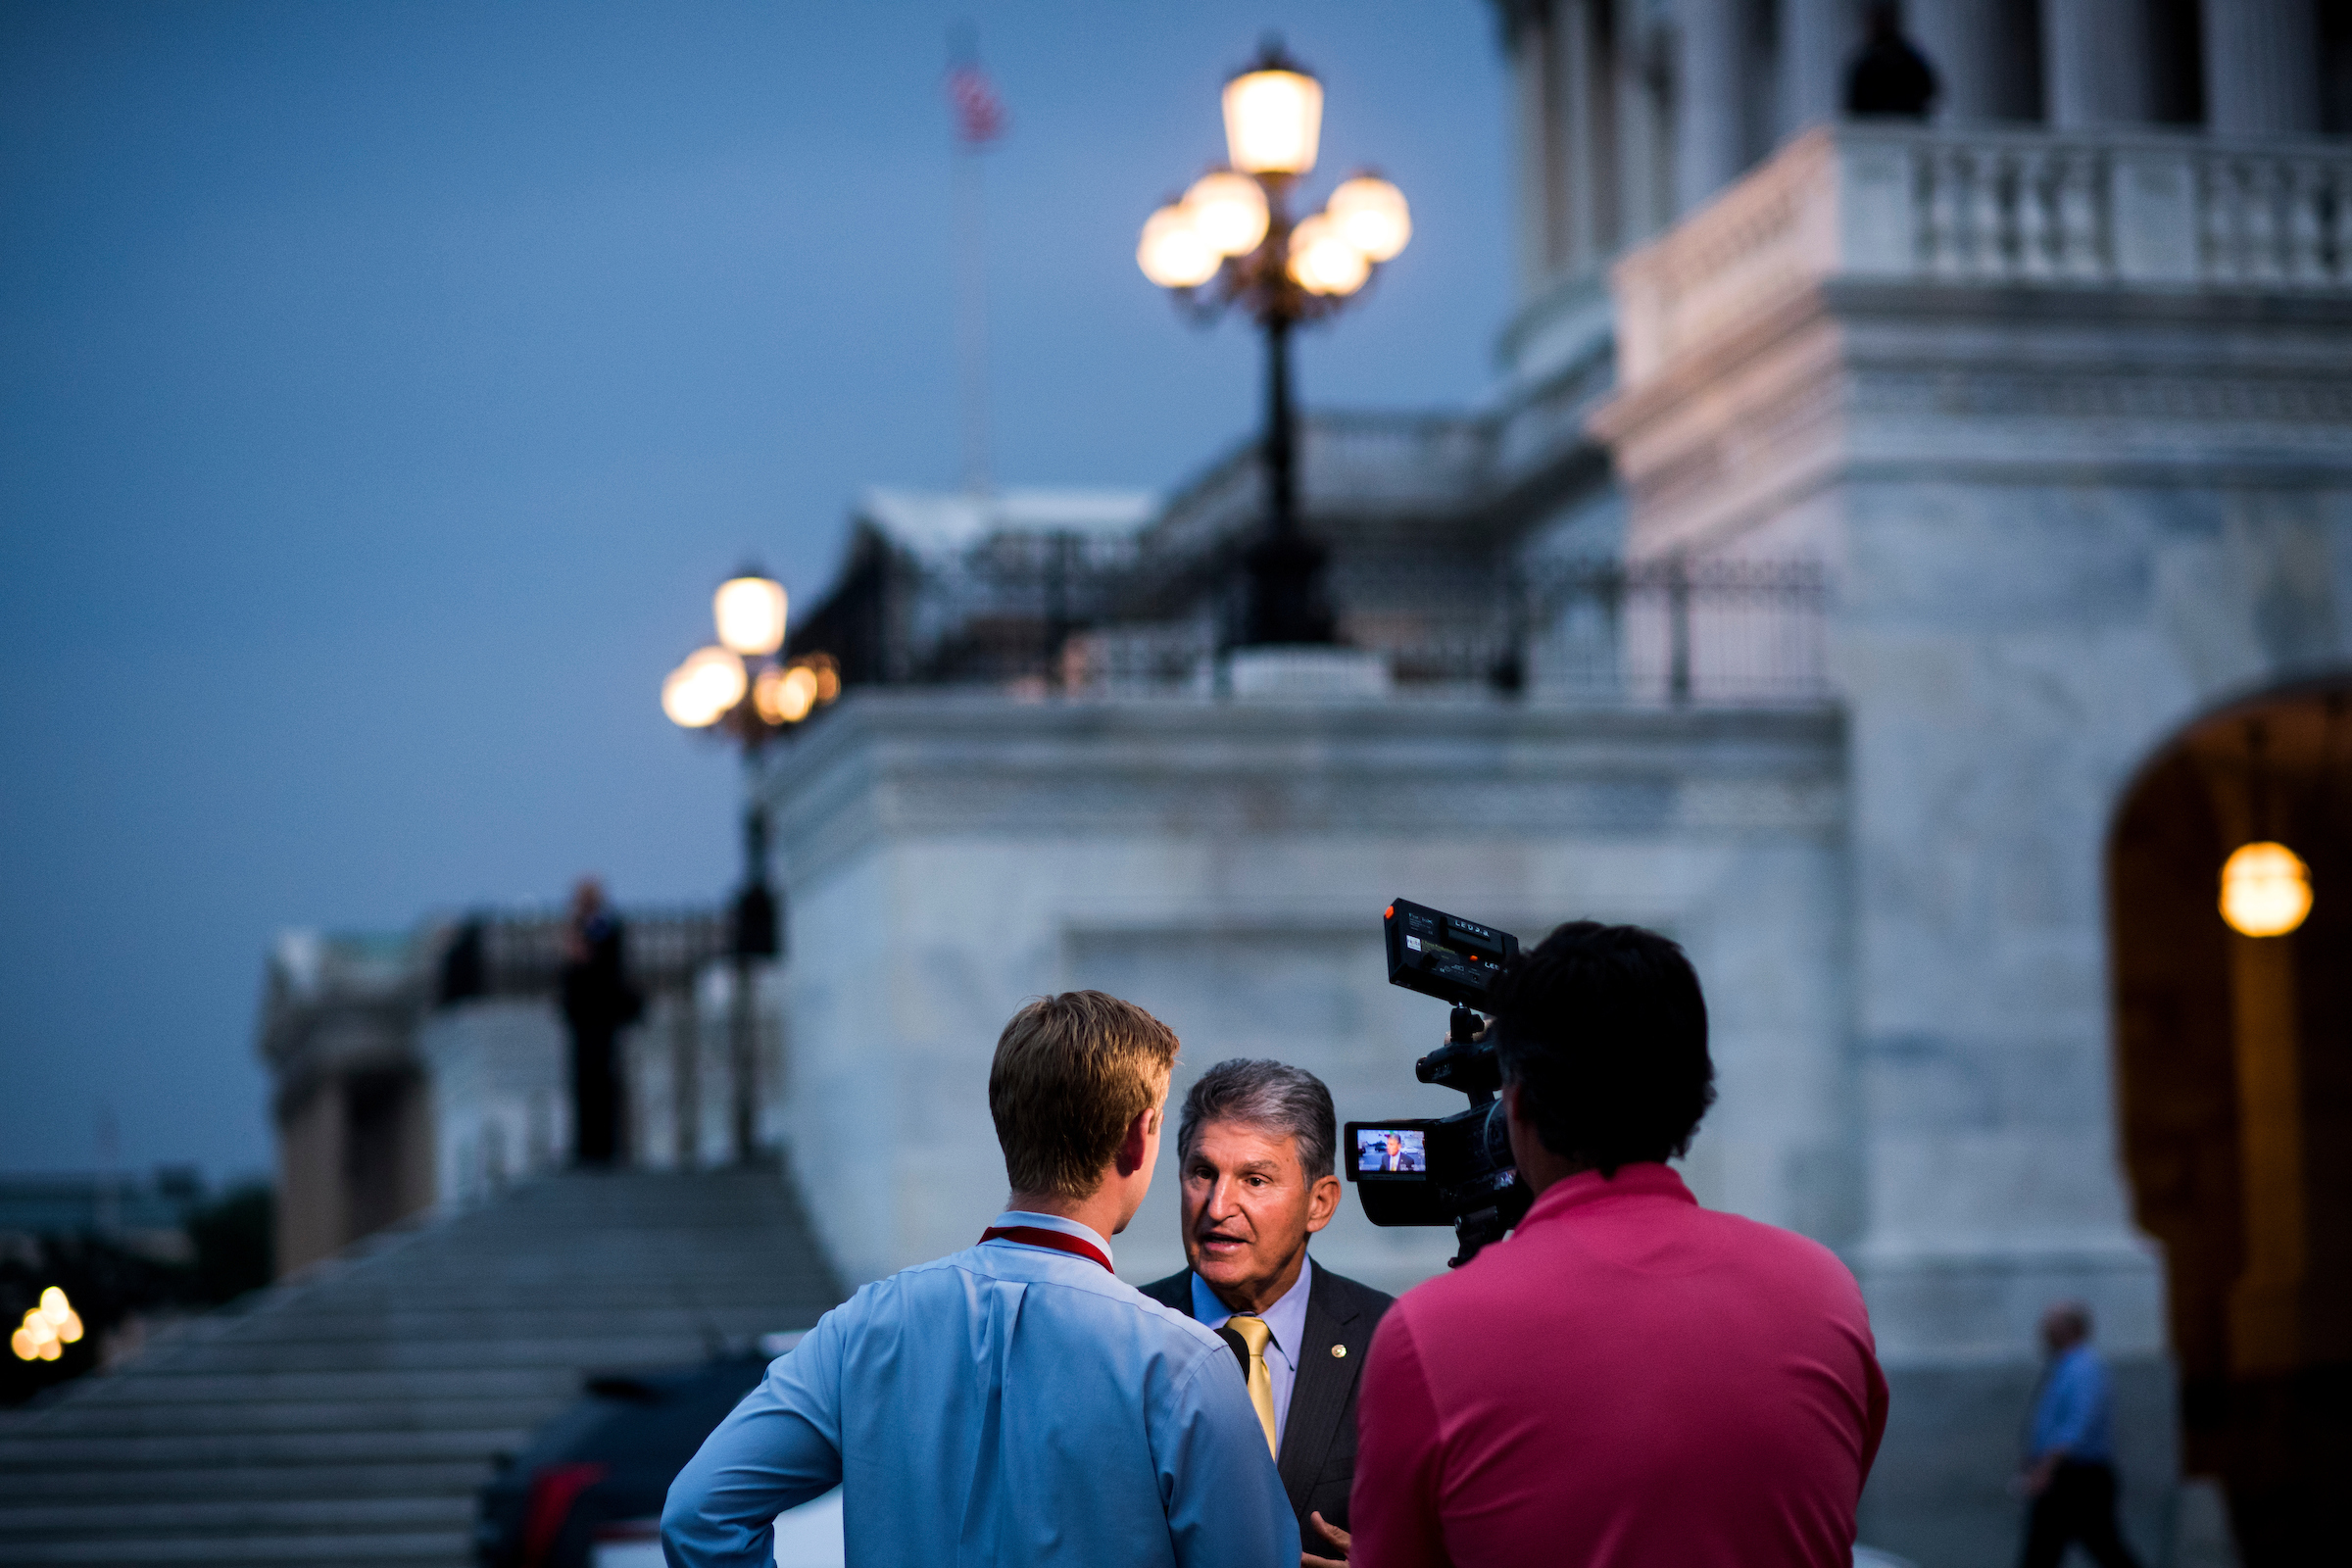 8:17 p.m. | Sen. Joe Manchin III, D-W.Va., talks to a news crew outside of the Capitol before the Senate begins its vote-a-rama night. (Bill Clark/CQ Roll Call)